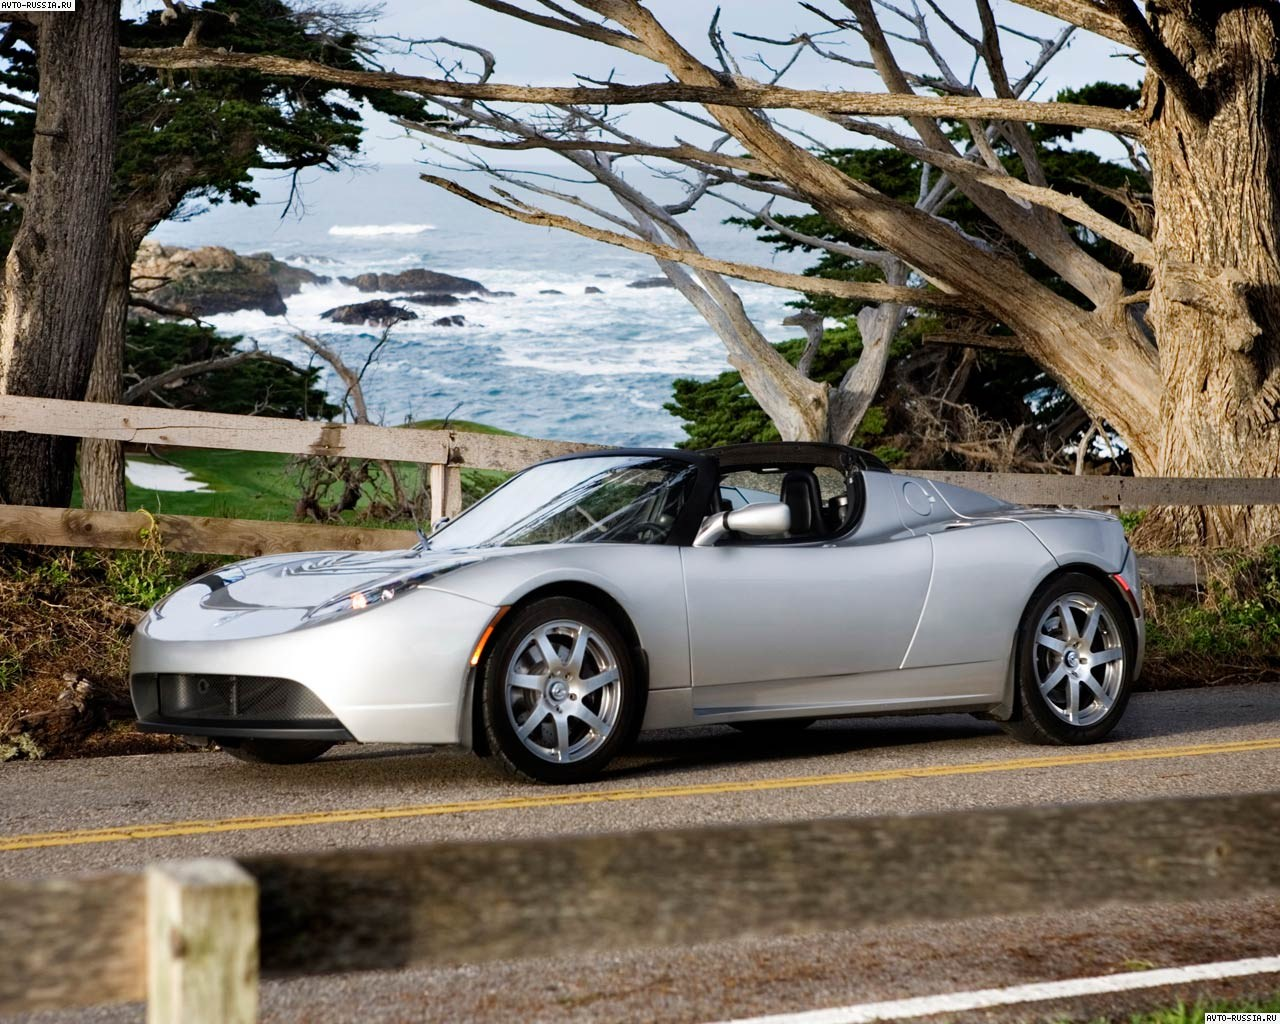 2018 tesla roadster. perfect roadster our sulit car view auto blog adding 2018 tesla roadster spy pictures  download for free resolution 1280 x 960  640x960 1072 for tesla roadster 0